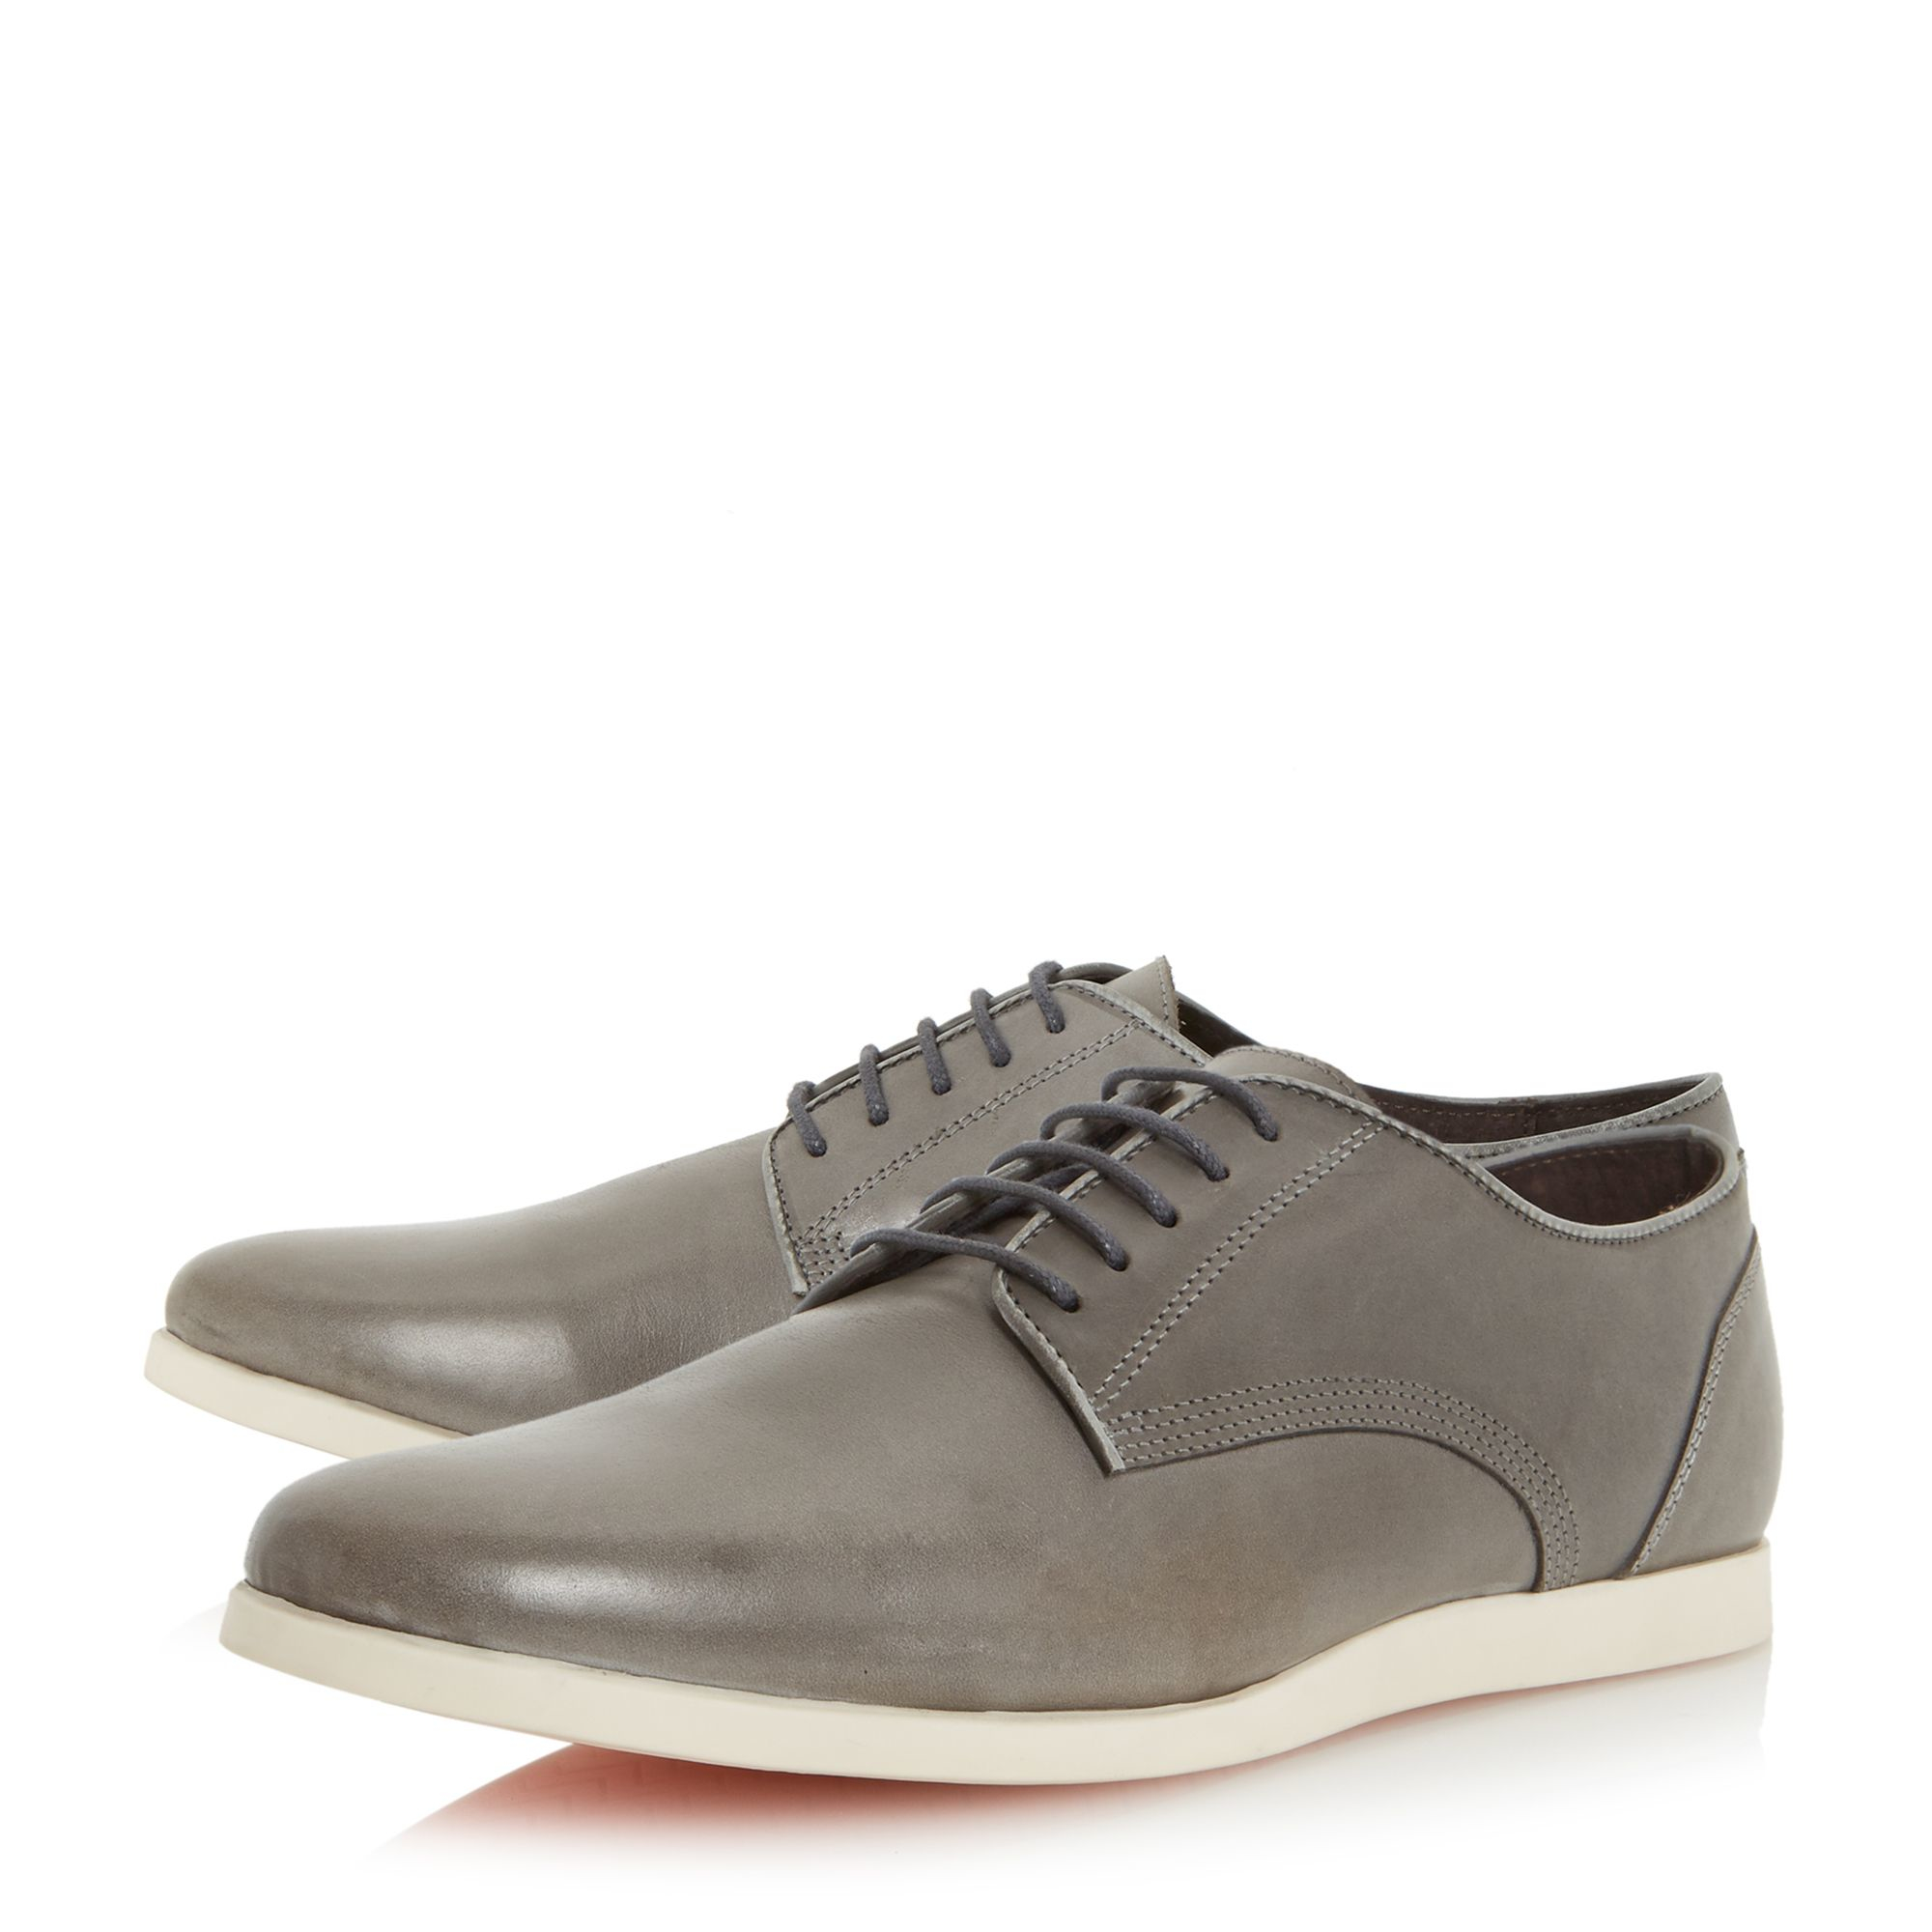 bertie bonniee leather lace up shoe in gray for lyst